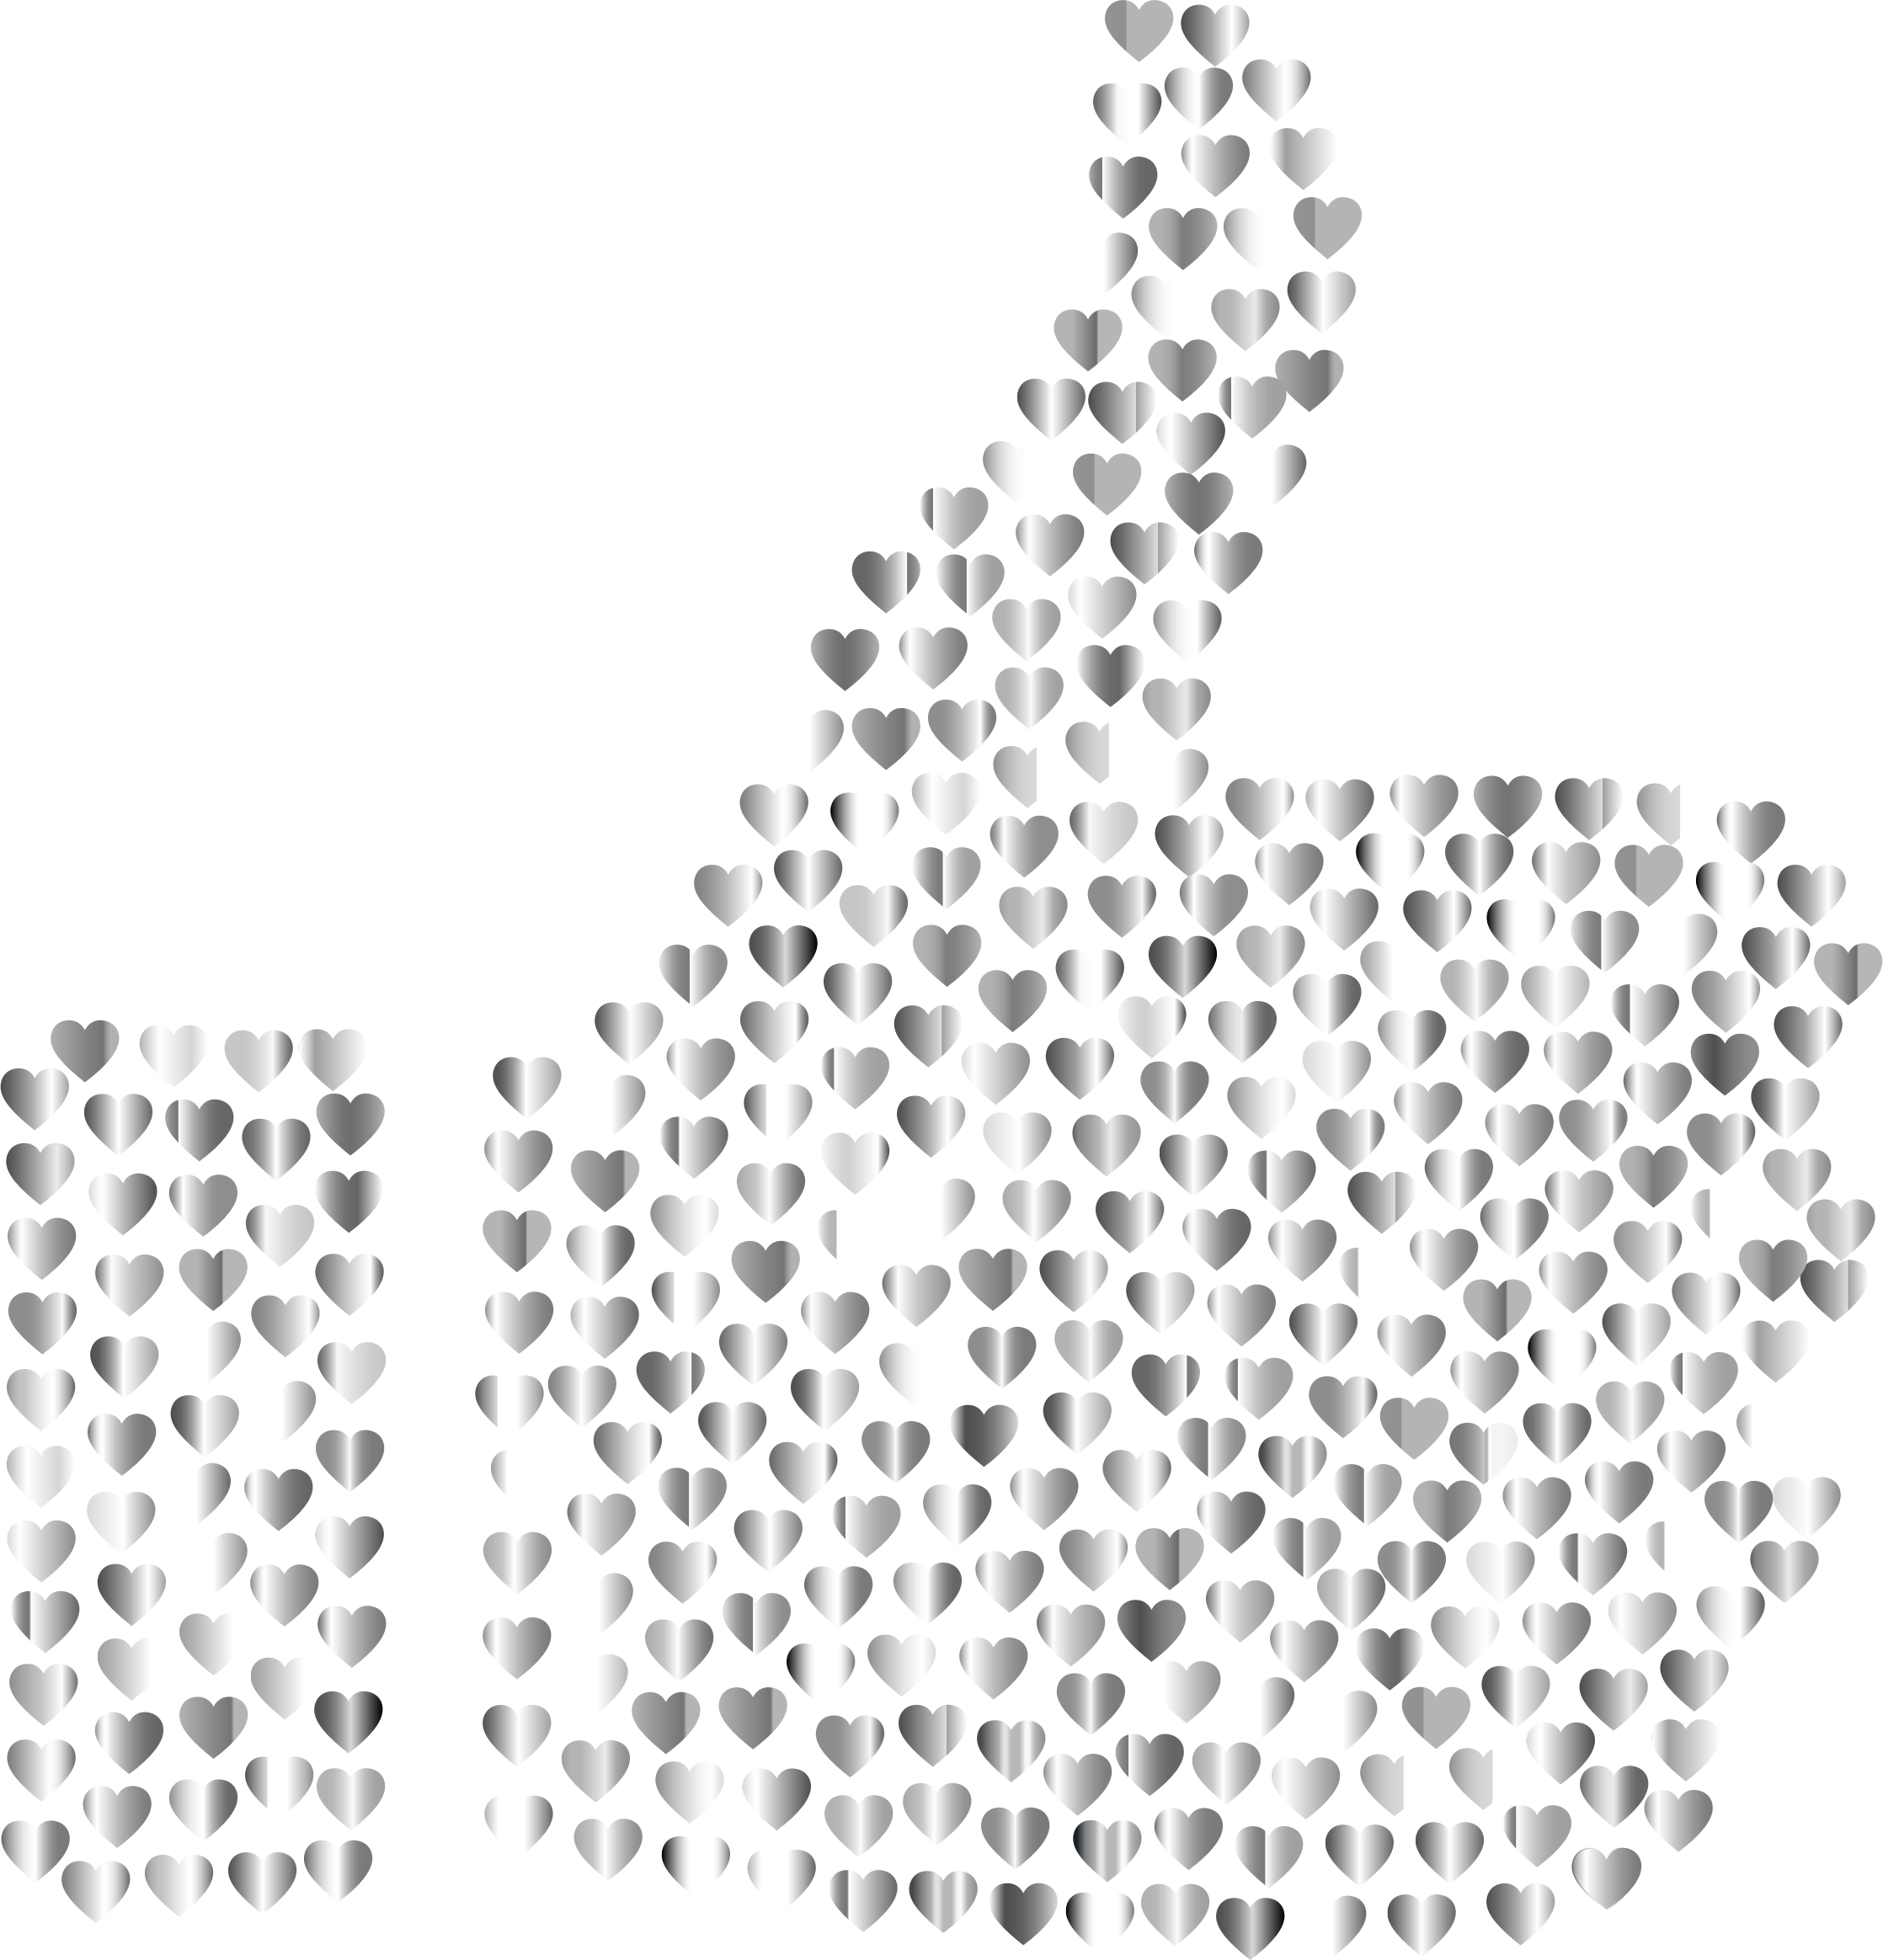 Prismatic Hearts Thumbs Up Silhouette 5 No Background by GDJ